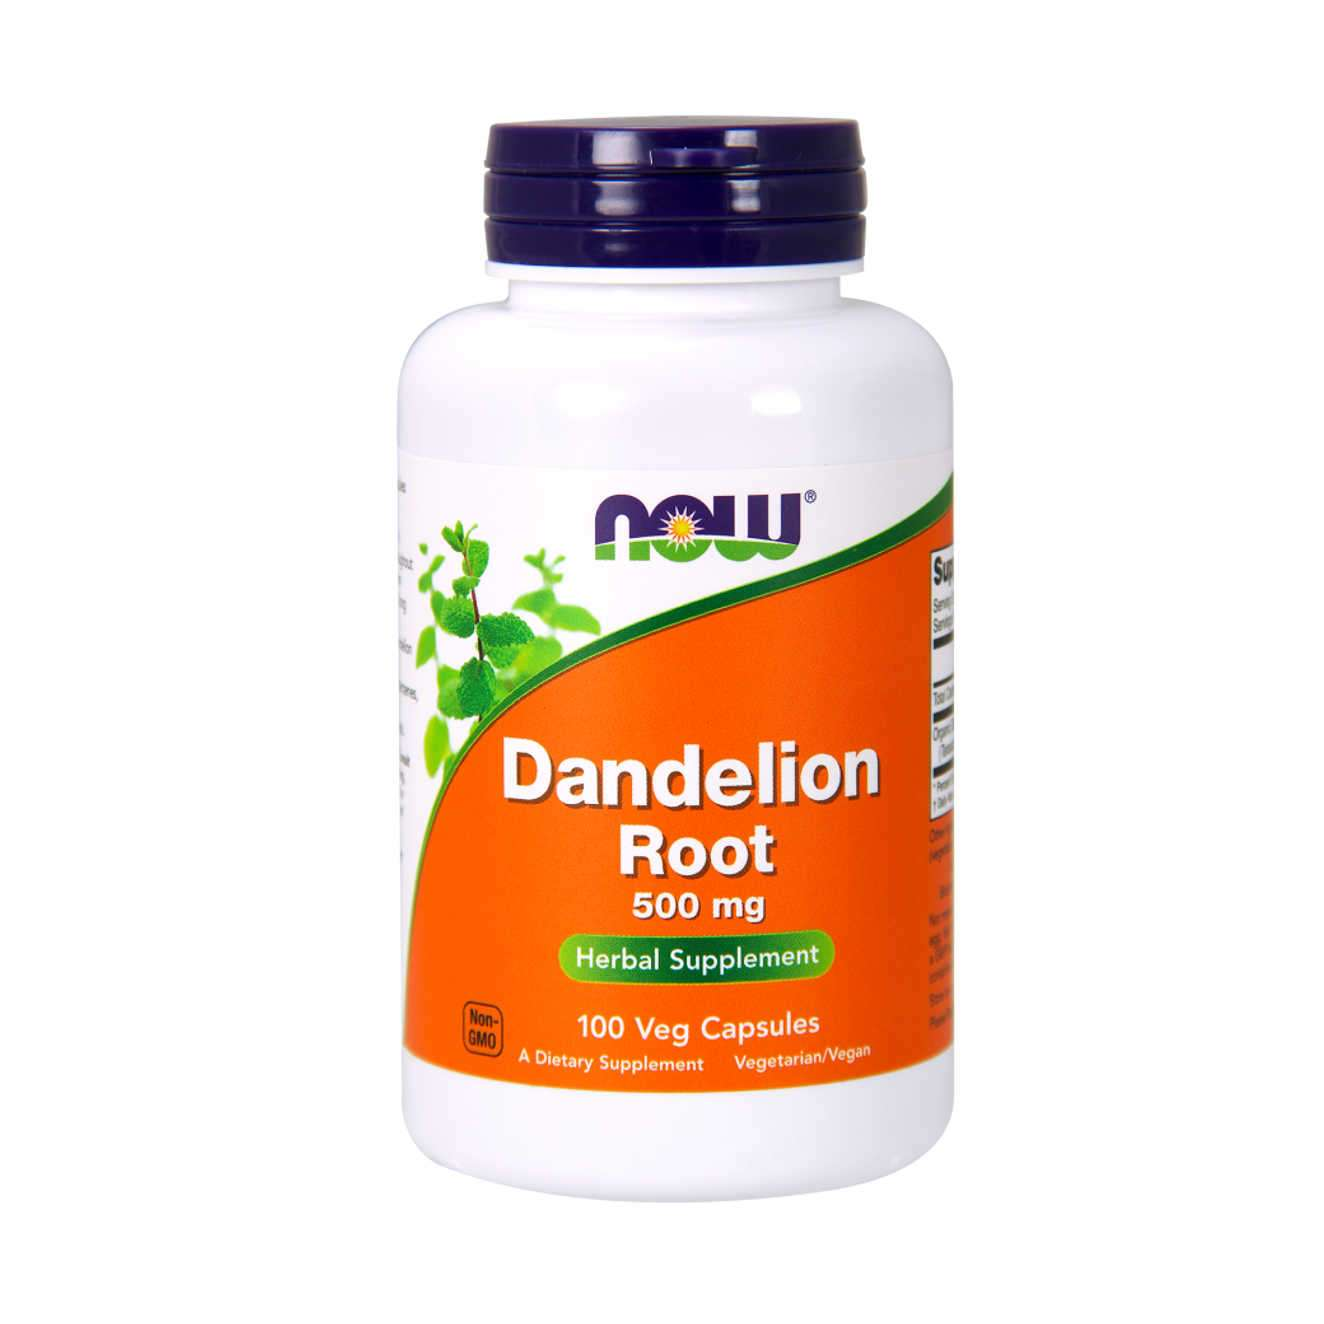 DANDELION ROOT 500mg - 100 caps